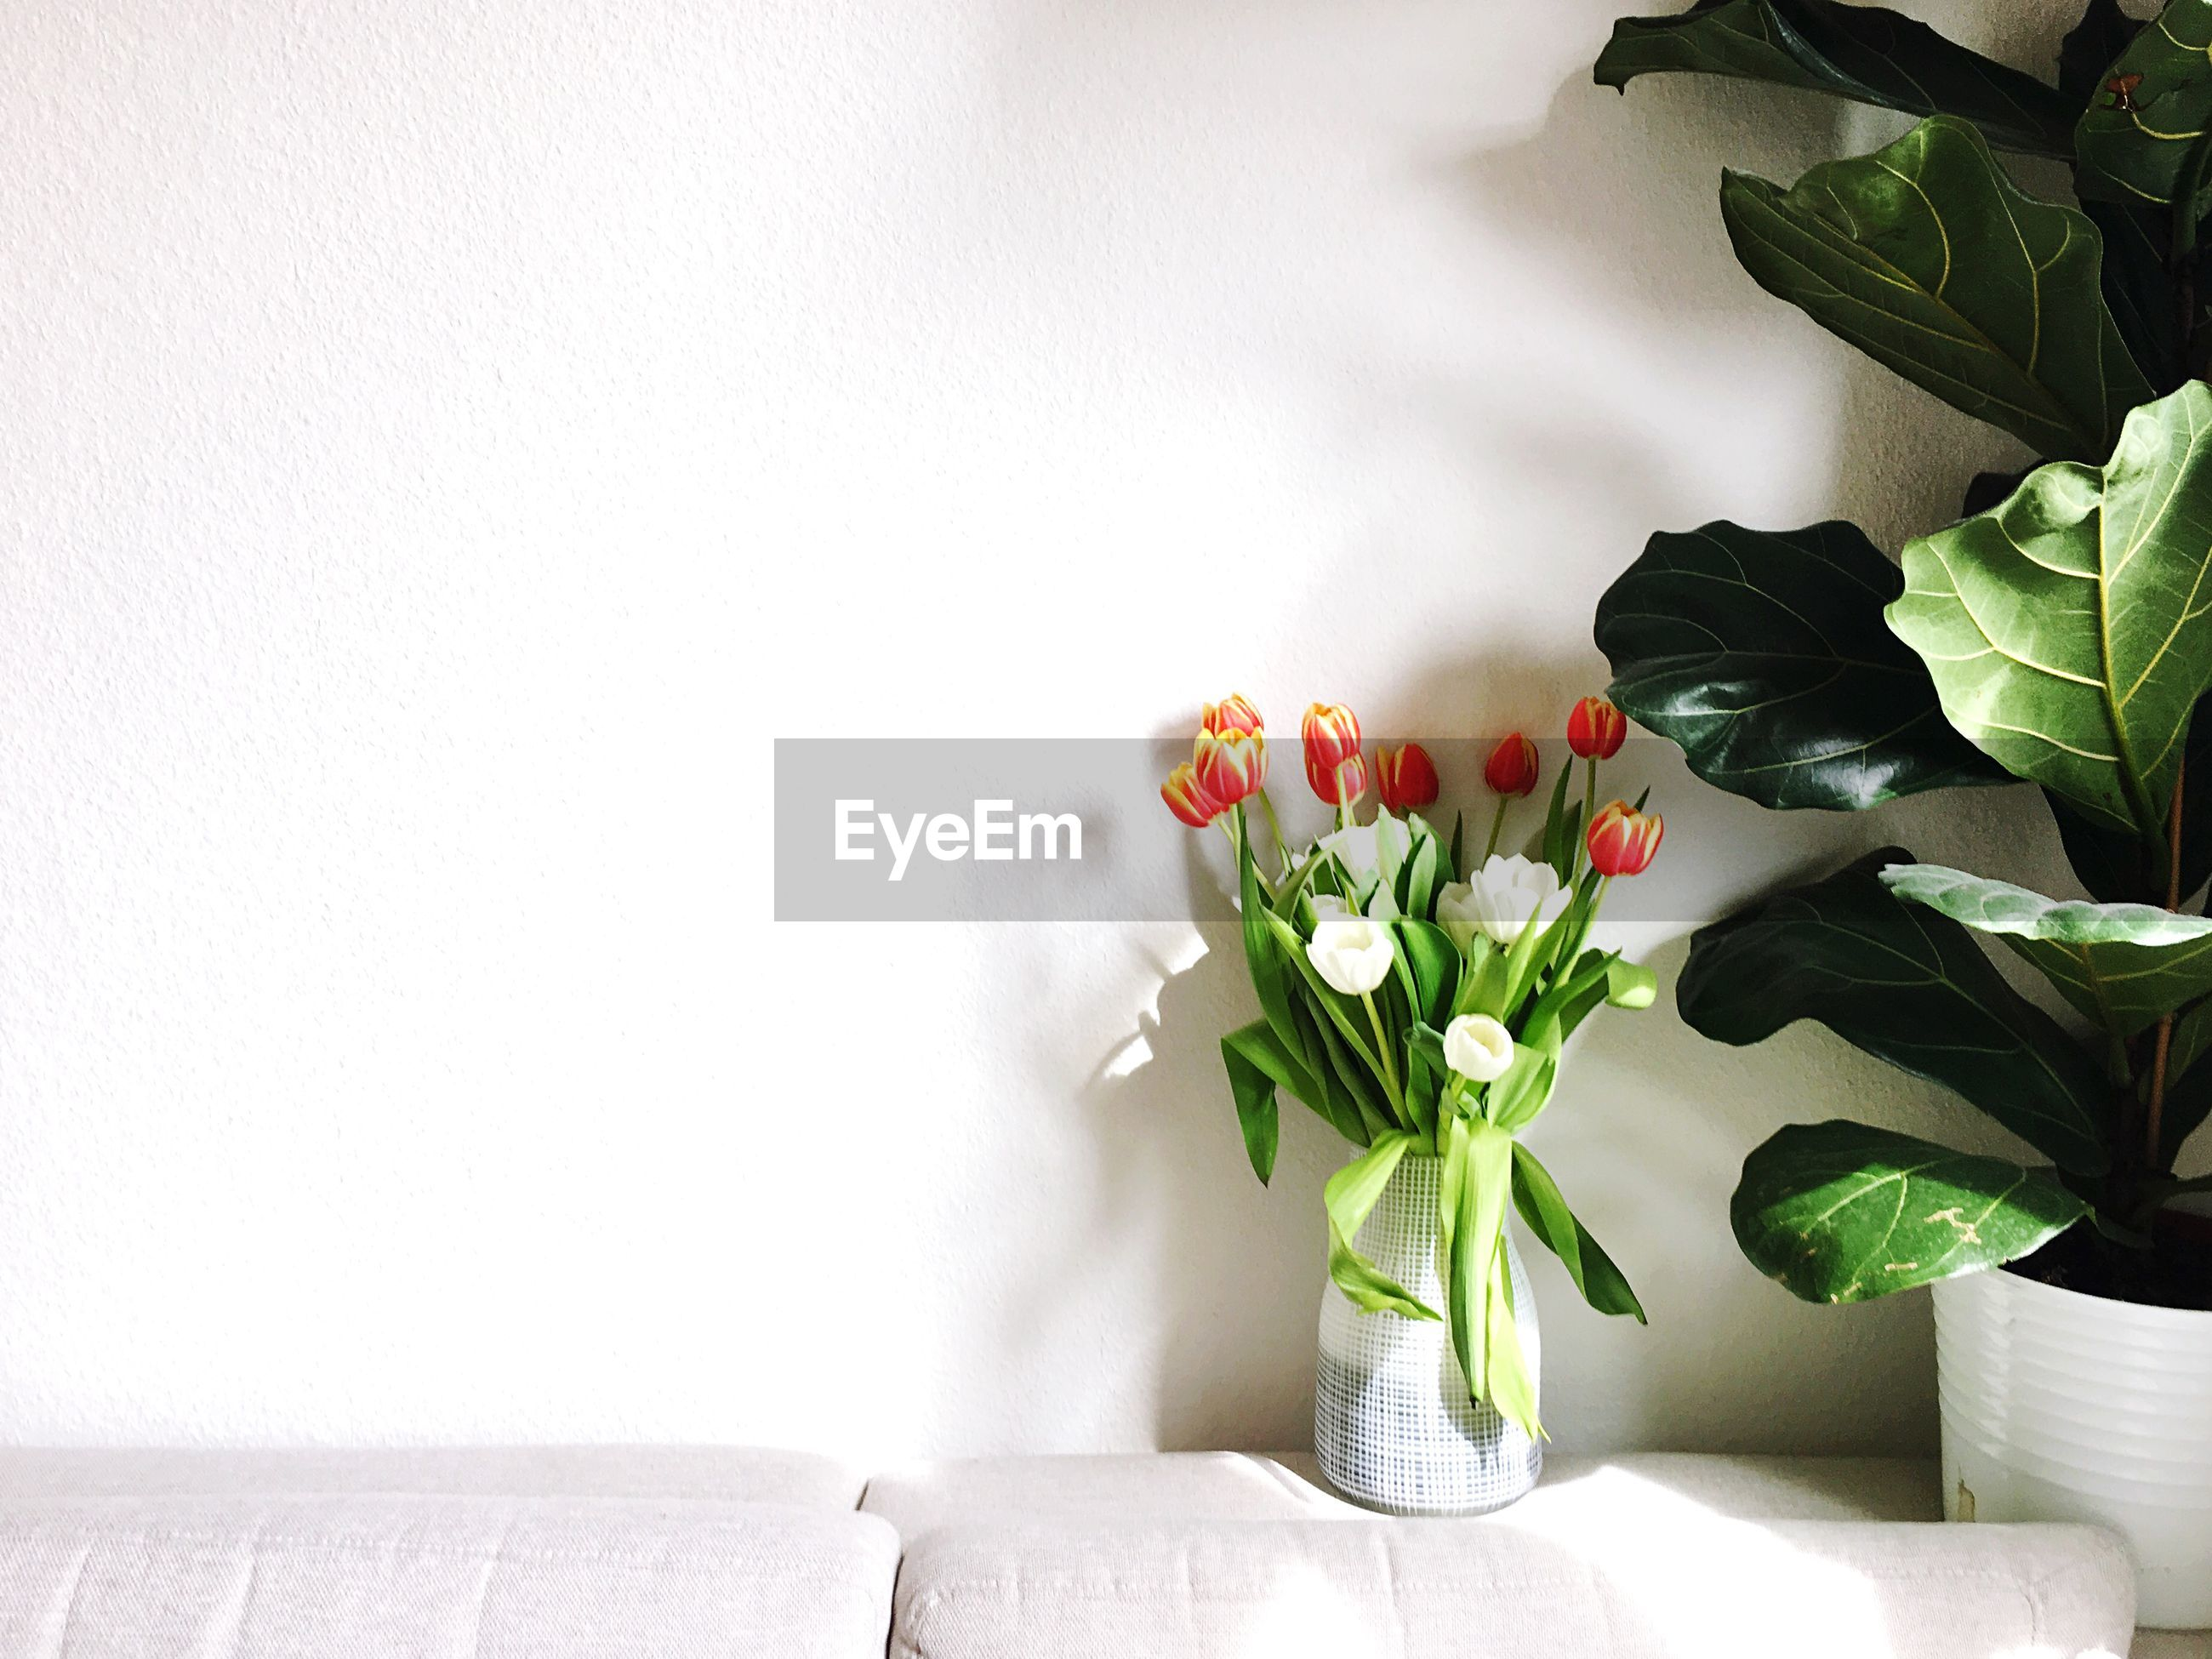 FLOWERS IN VASE ON TABLE AGAINST WALL